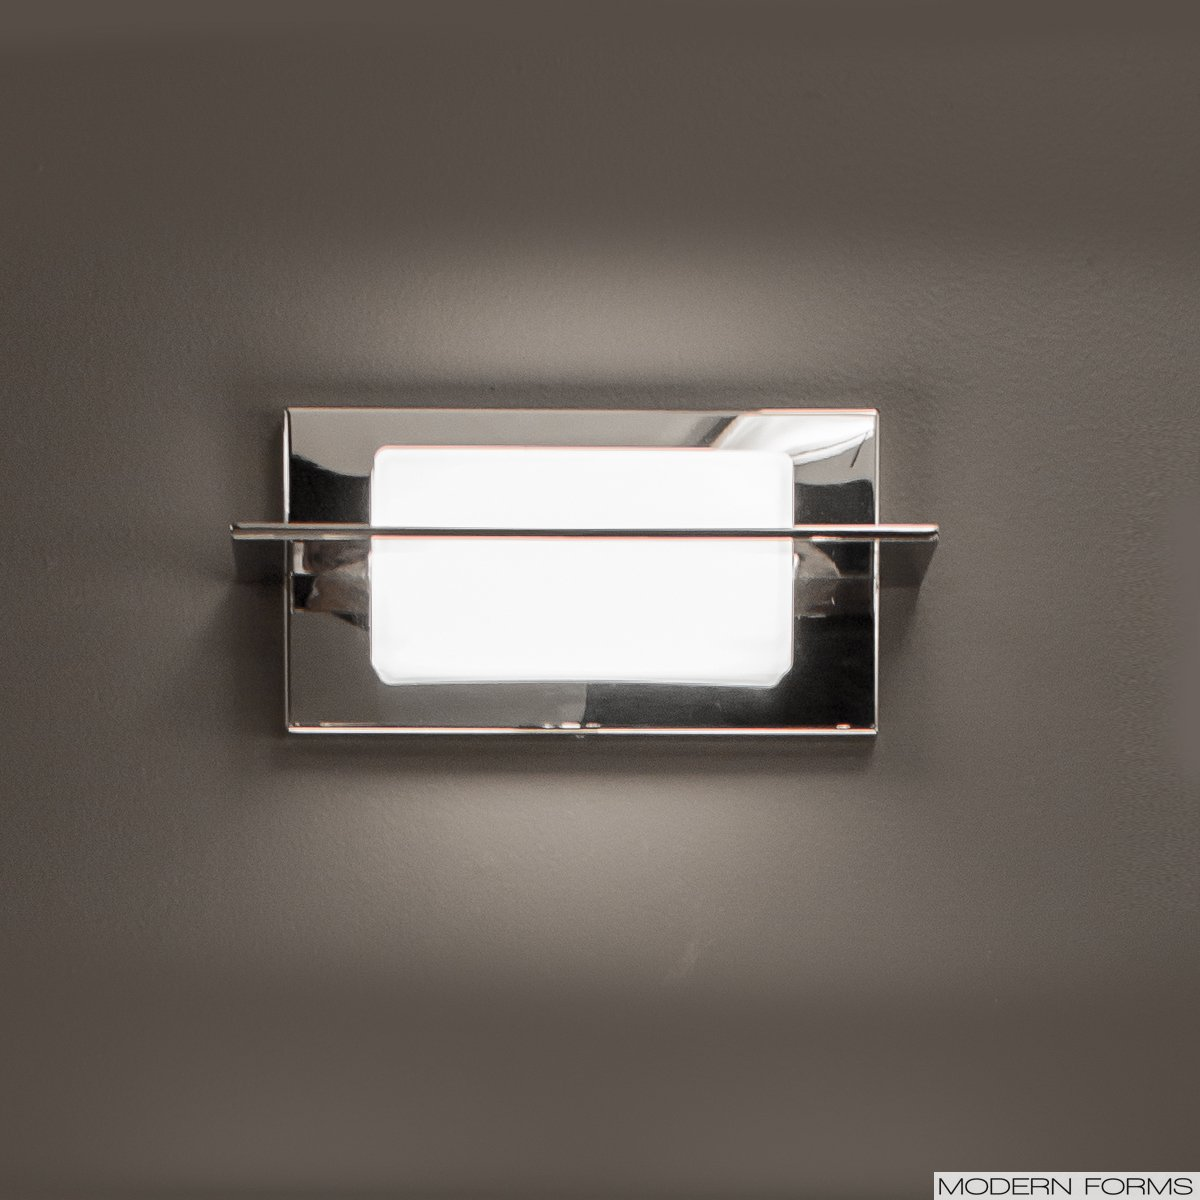 Led Lights For Vanity : Modern Forms (WS-47511) Razor 1-Light LED Vanity